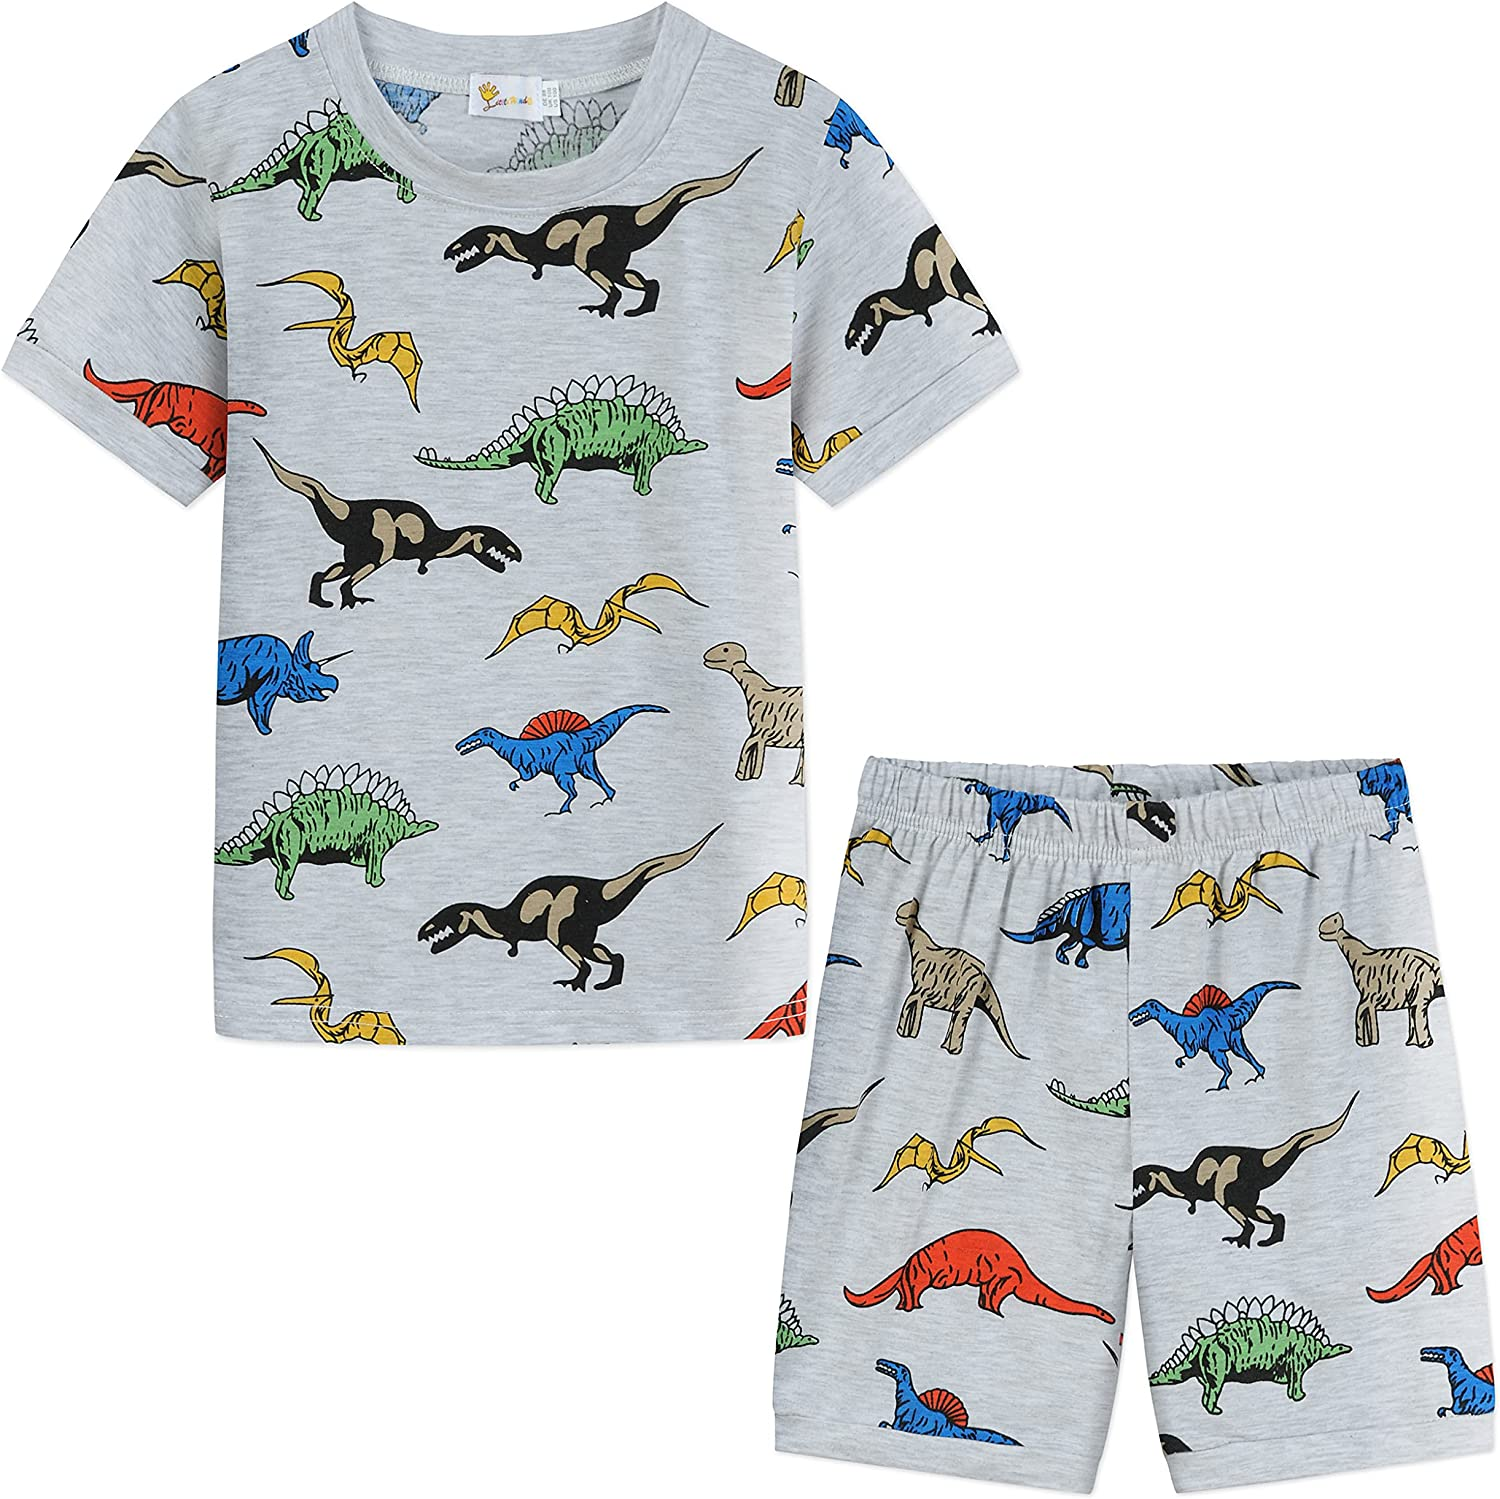 Little Girls Boys Short Sets Unicorn Dinosaur Print 2 Piece Summer Top and Shorts Clothes Sets Outfits 1-7 Years